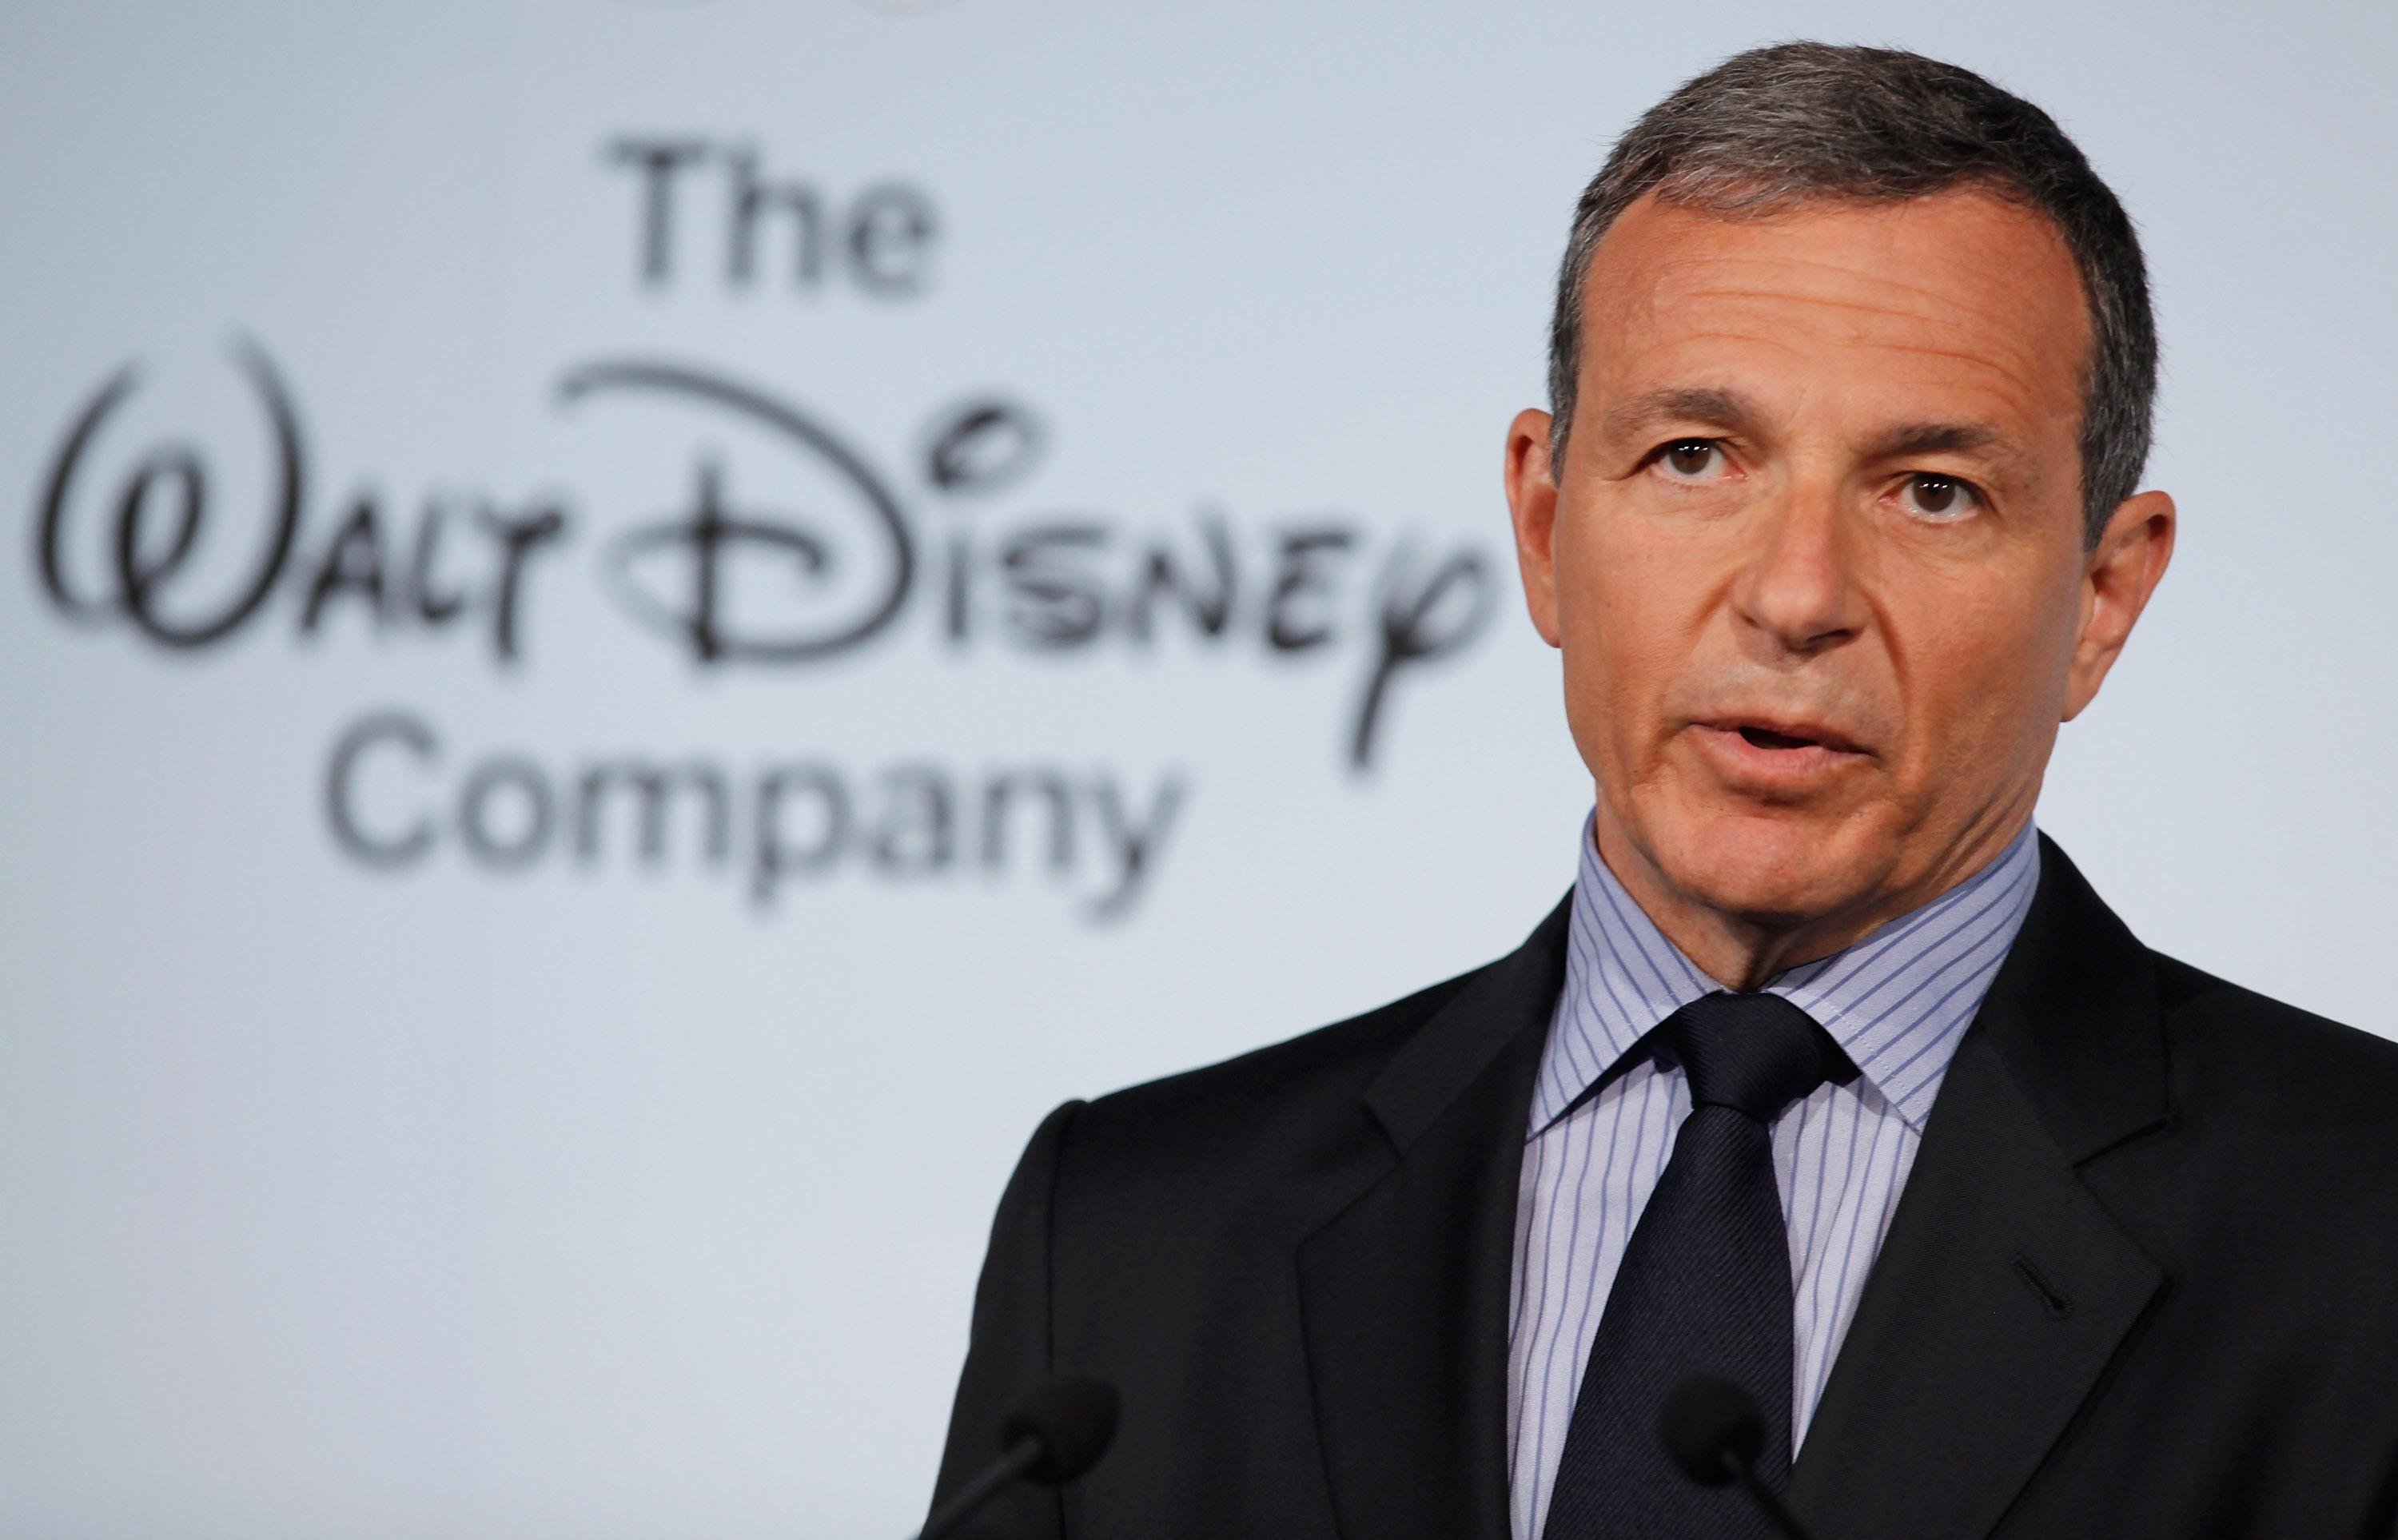 The Walt Disney Company Chairman and CEO Robert Iger.